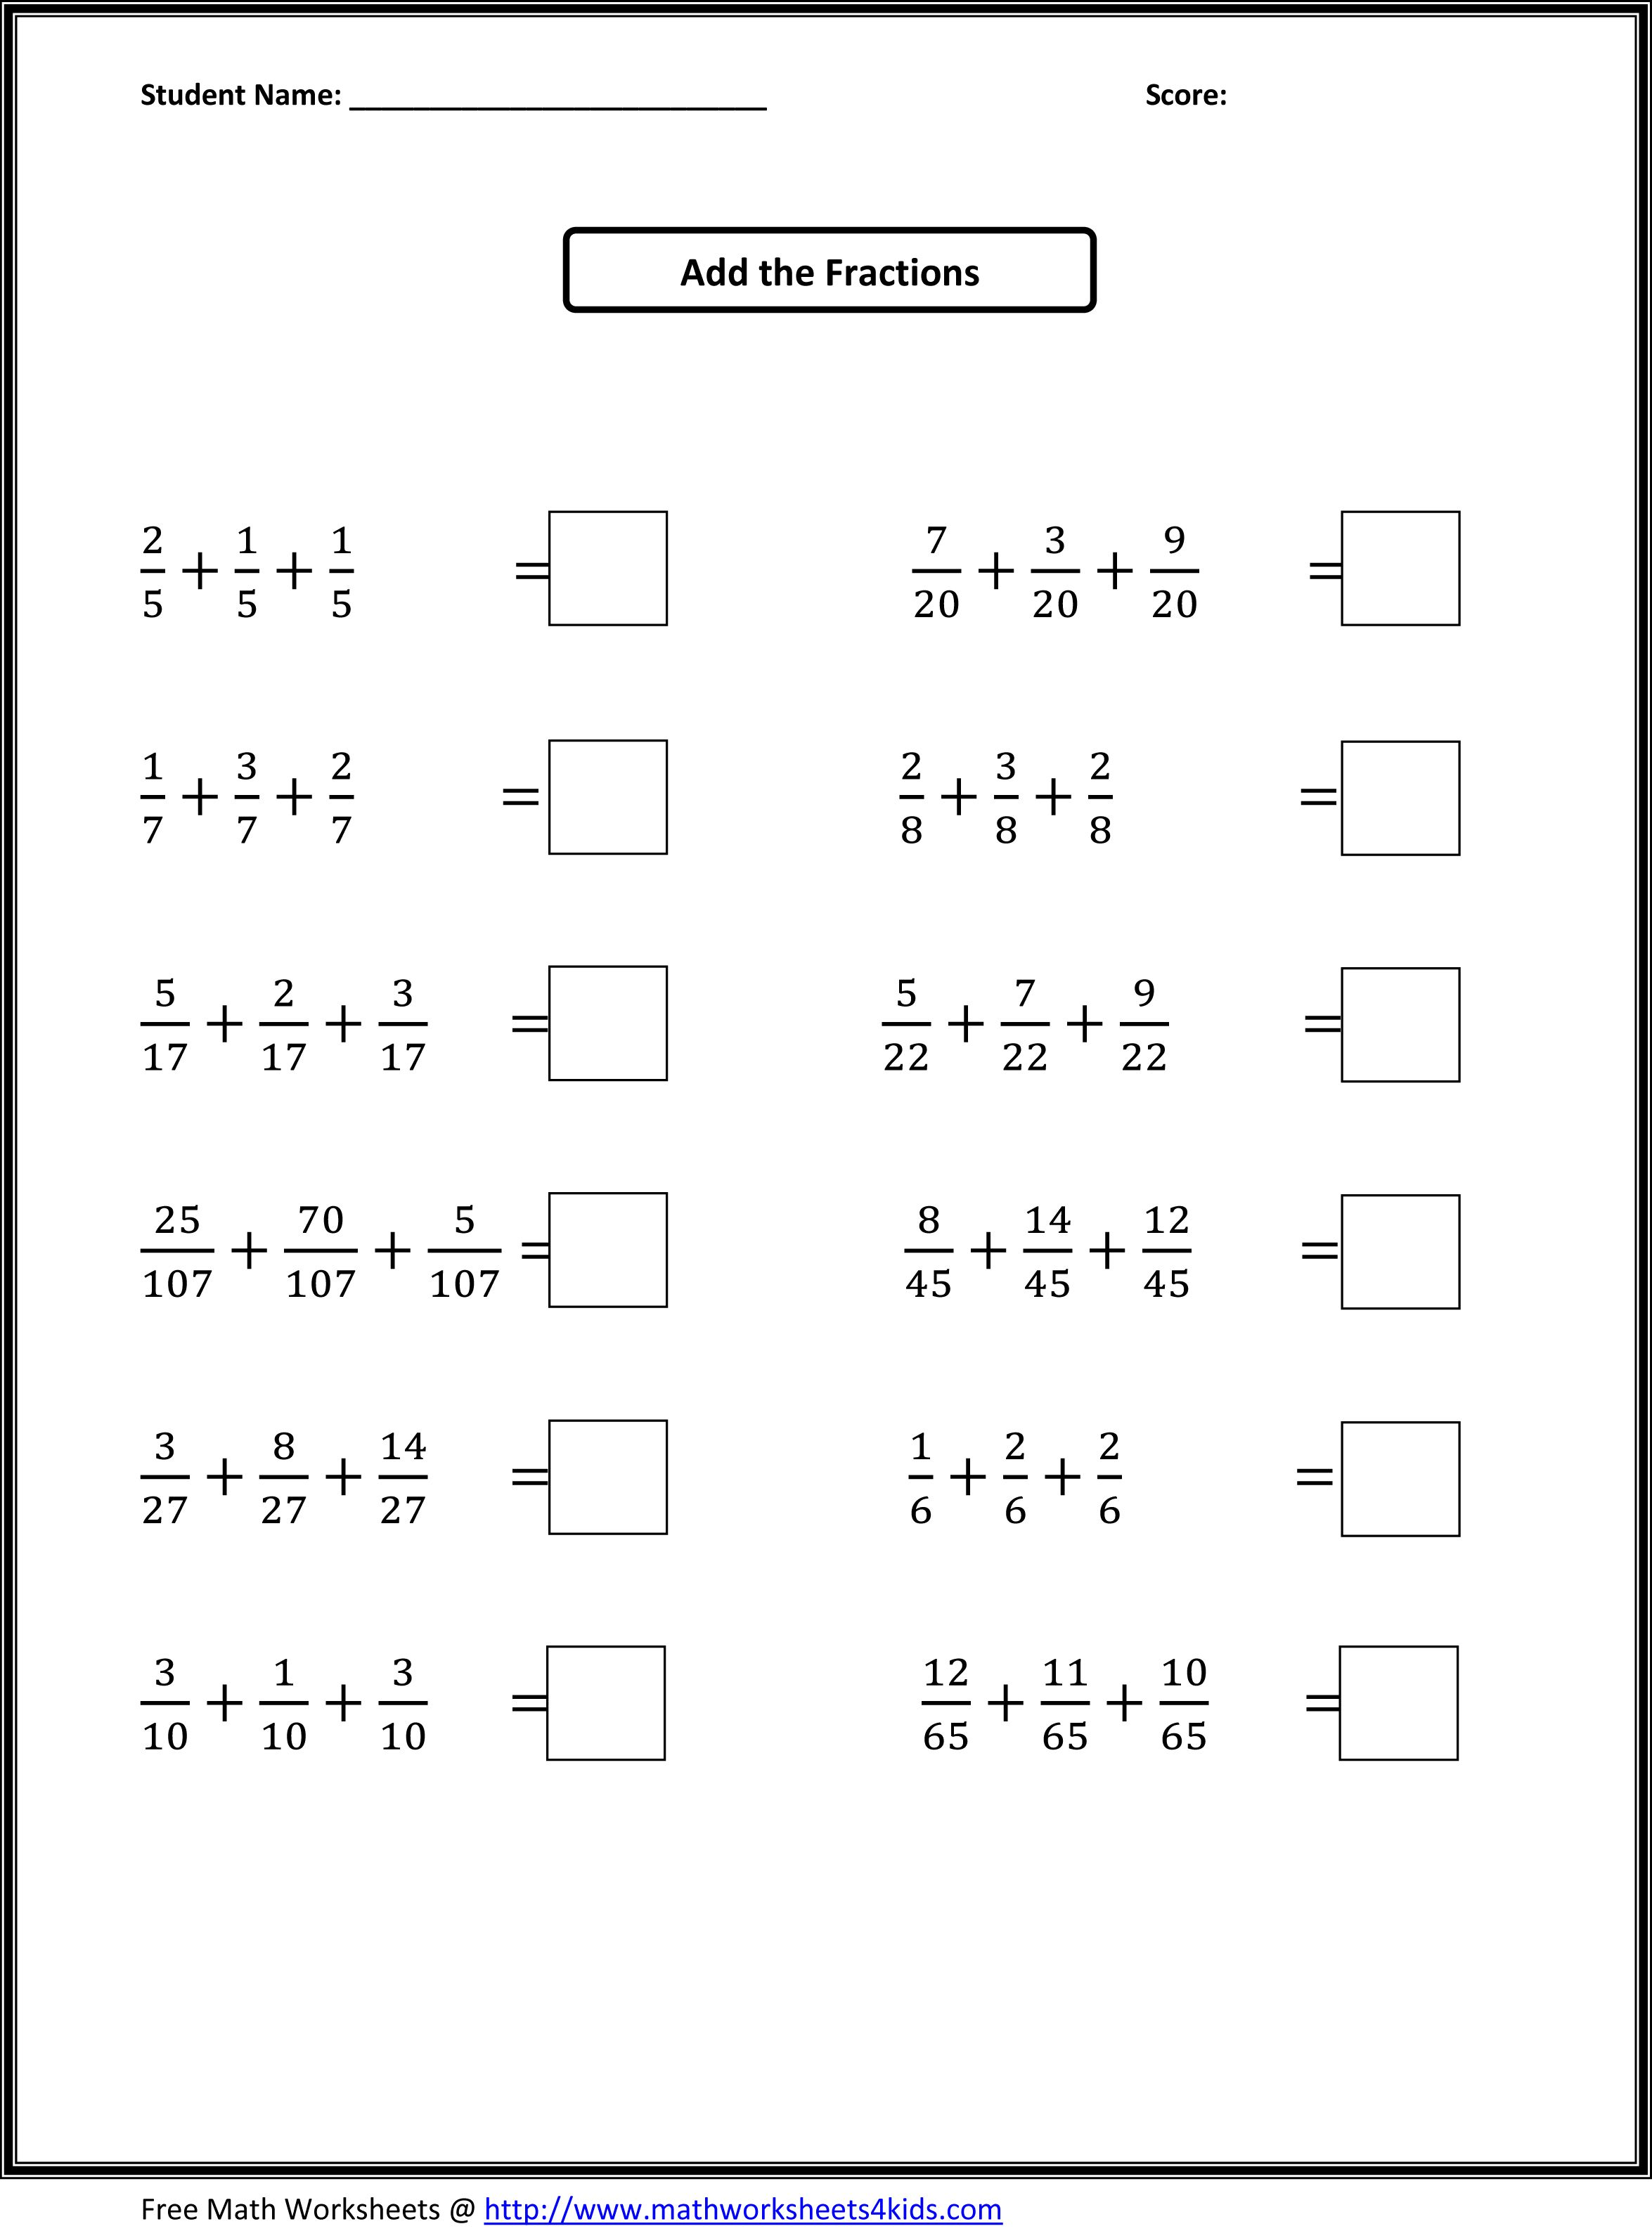 Worksheet Math Worksheets Fourth Grade 1000 images about math worksheets on pinterest 4th grade geometry and math